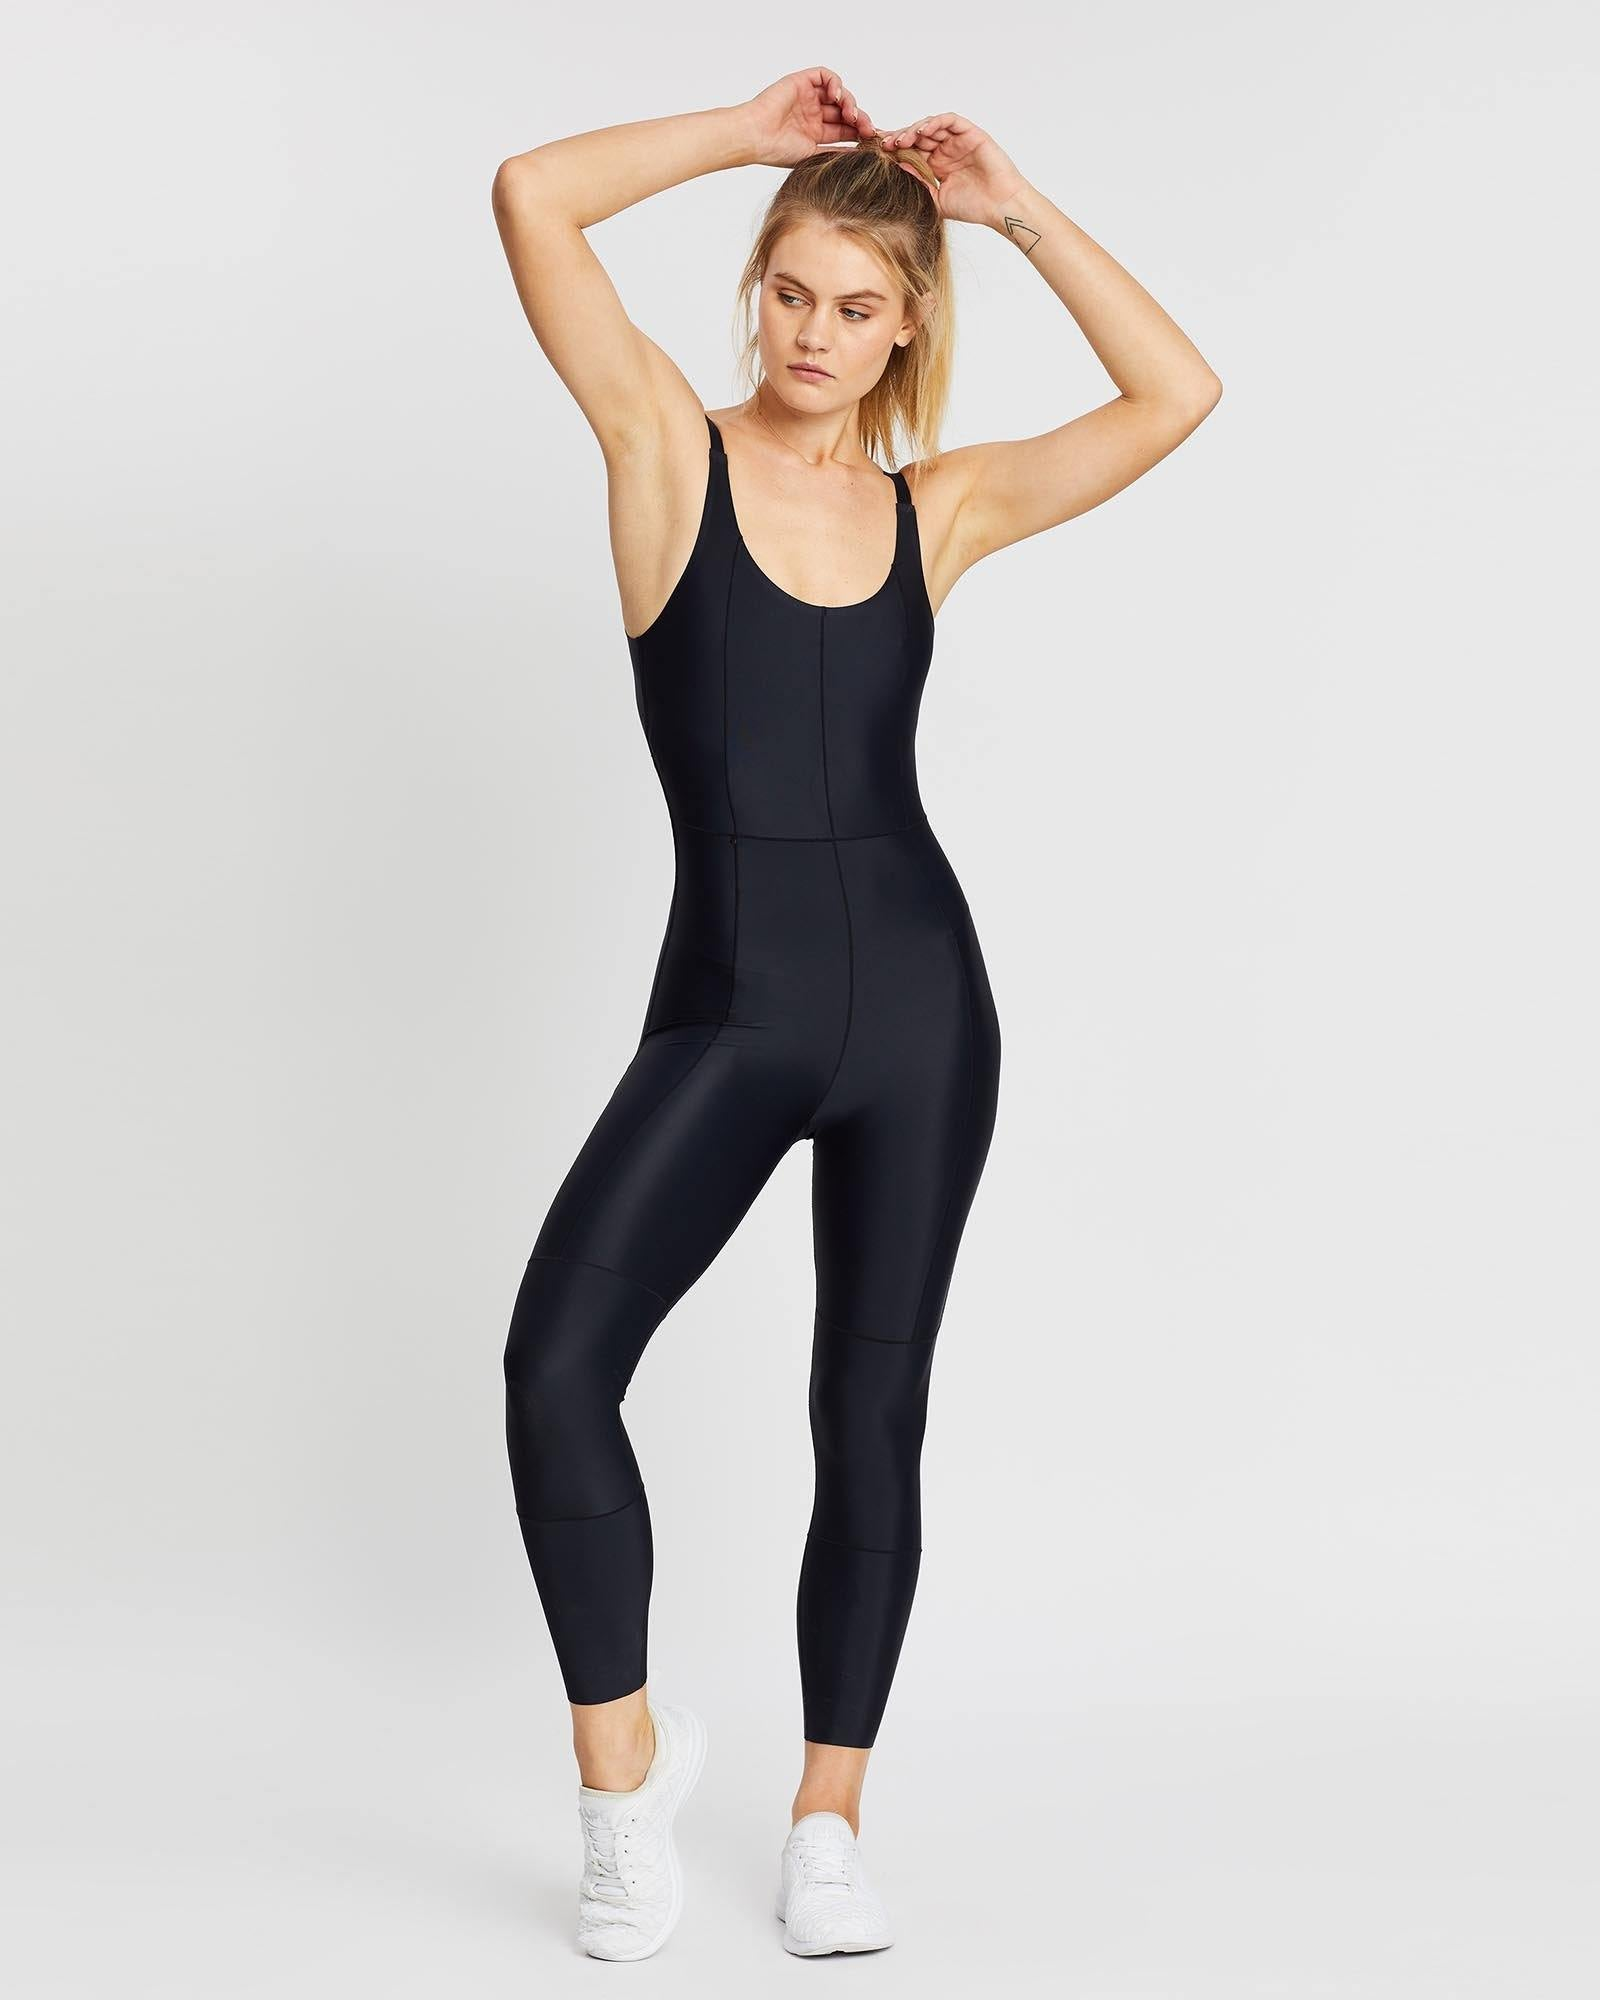 Companion Transverse Long Bodysuit